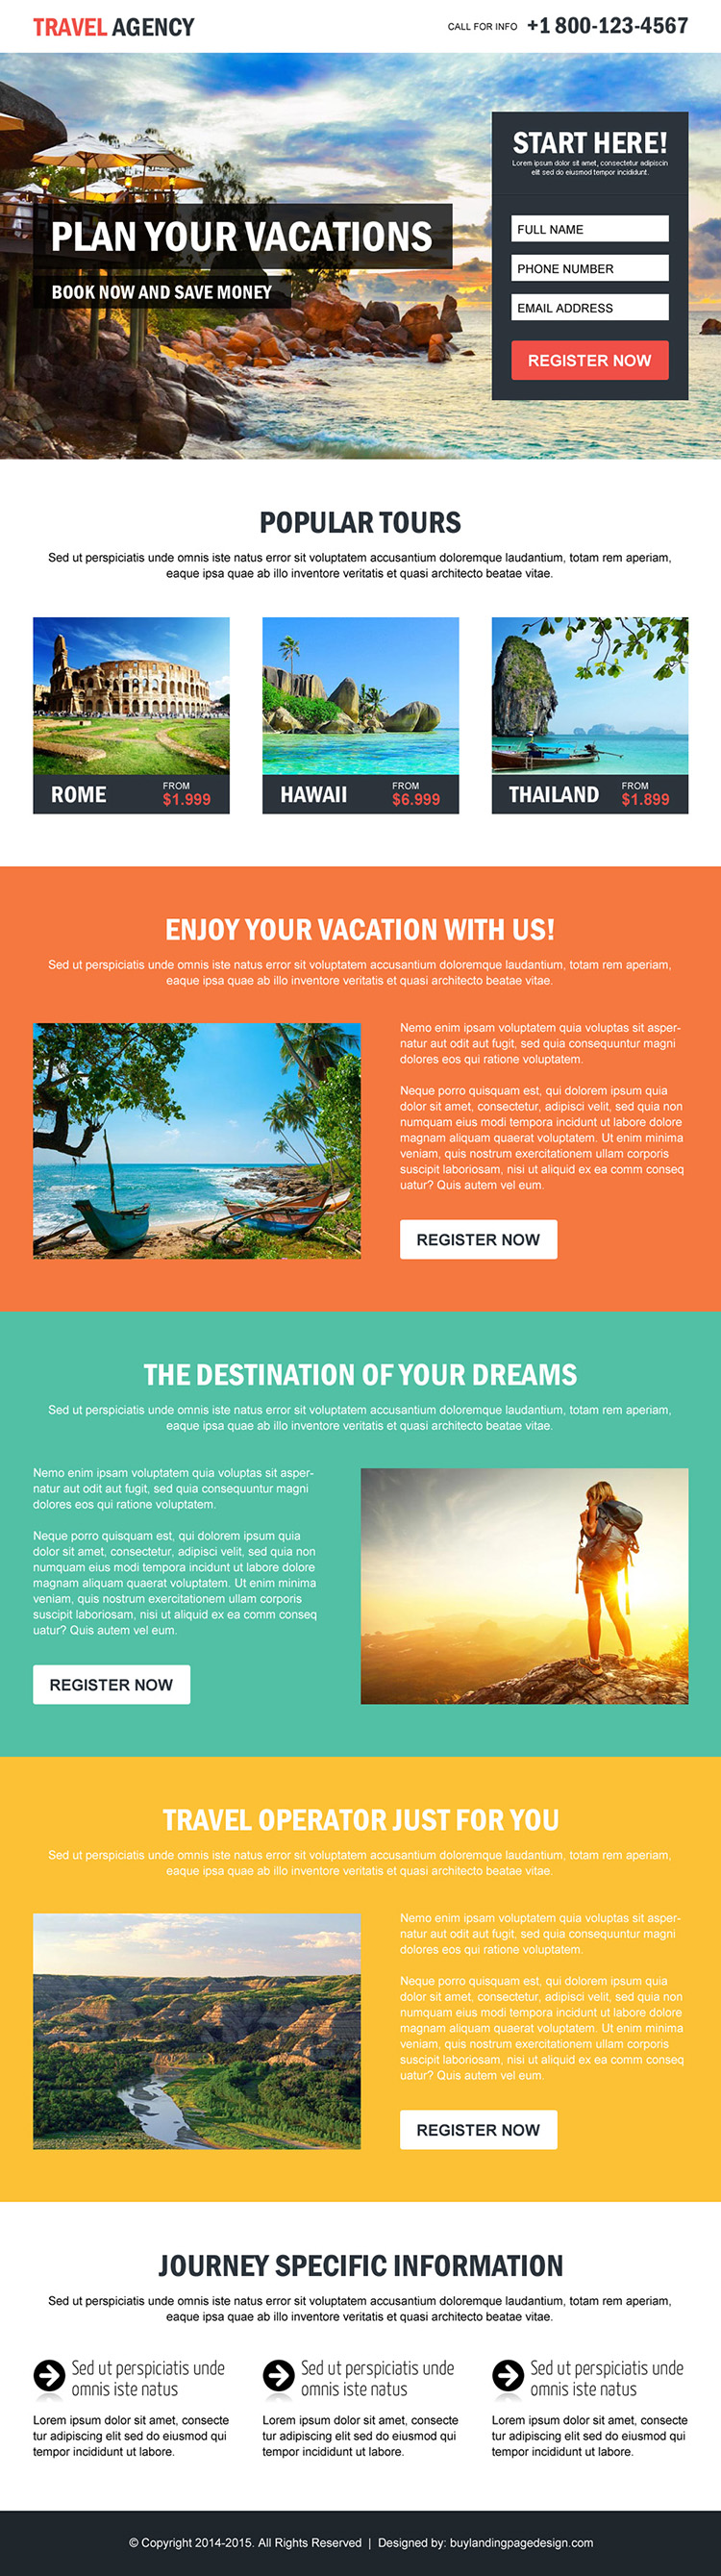 travel agency vacation planning responsive landing page https://www.buylandingpagedesign.com/buy/travel-agency-vacation-planning-responsive-landing-page/2115